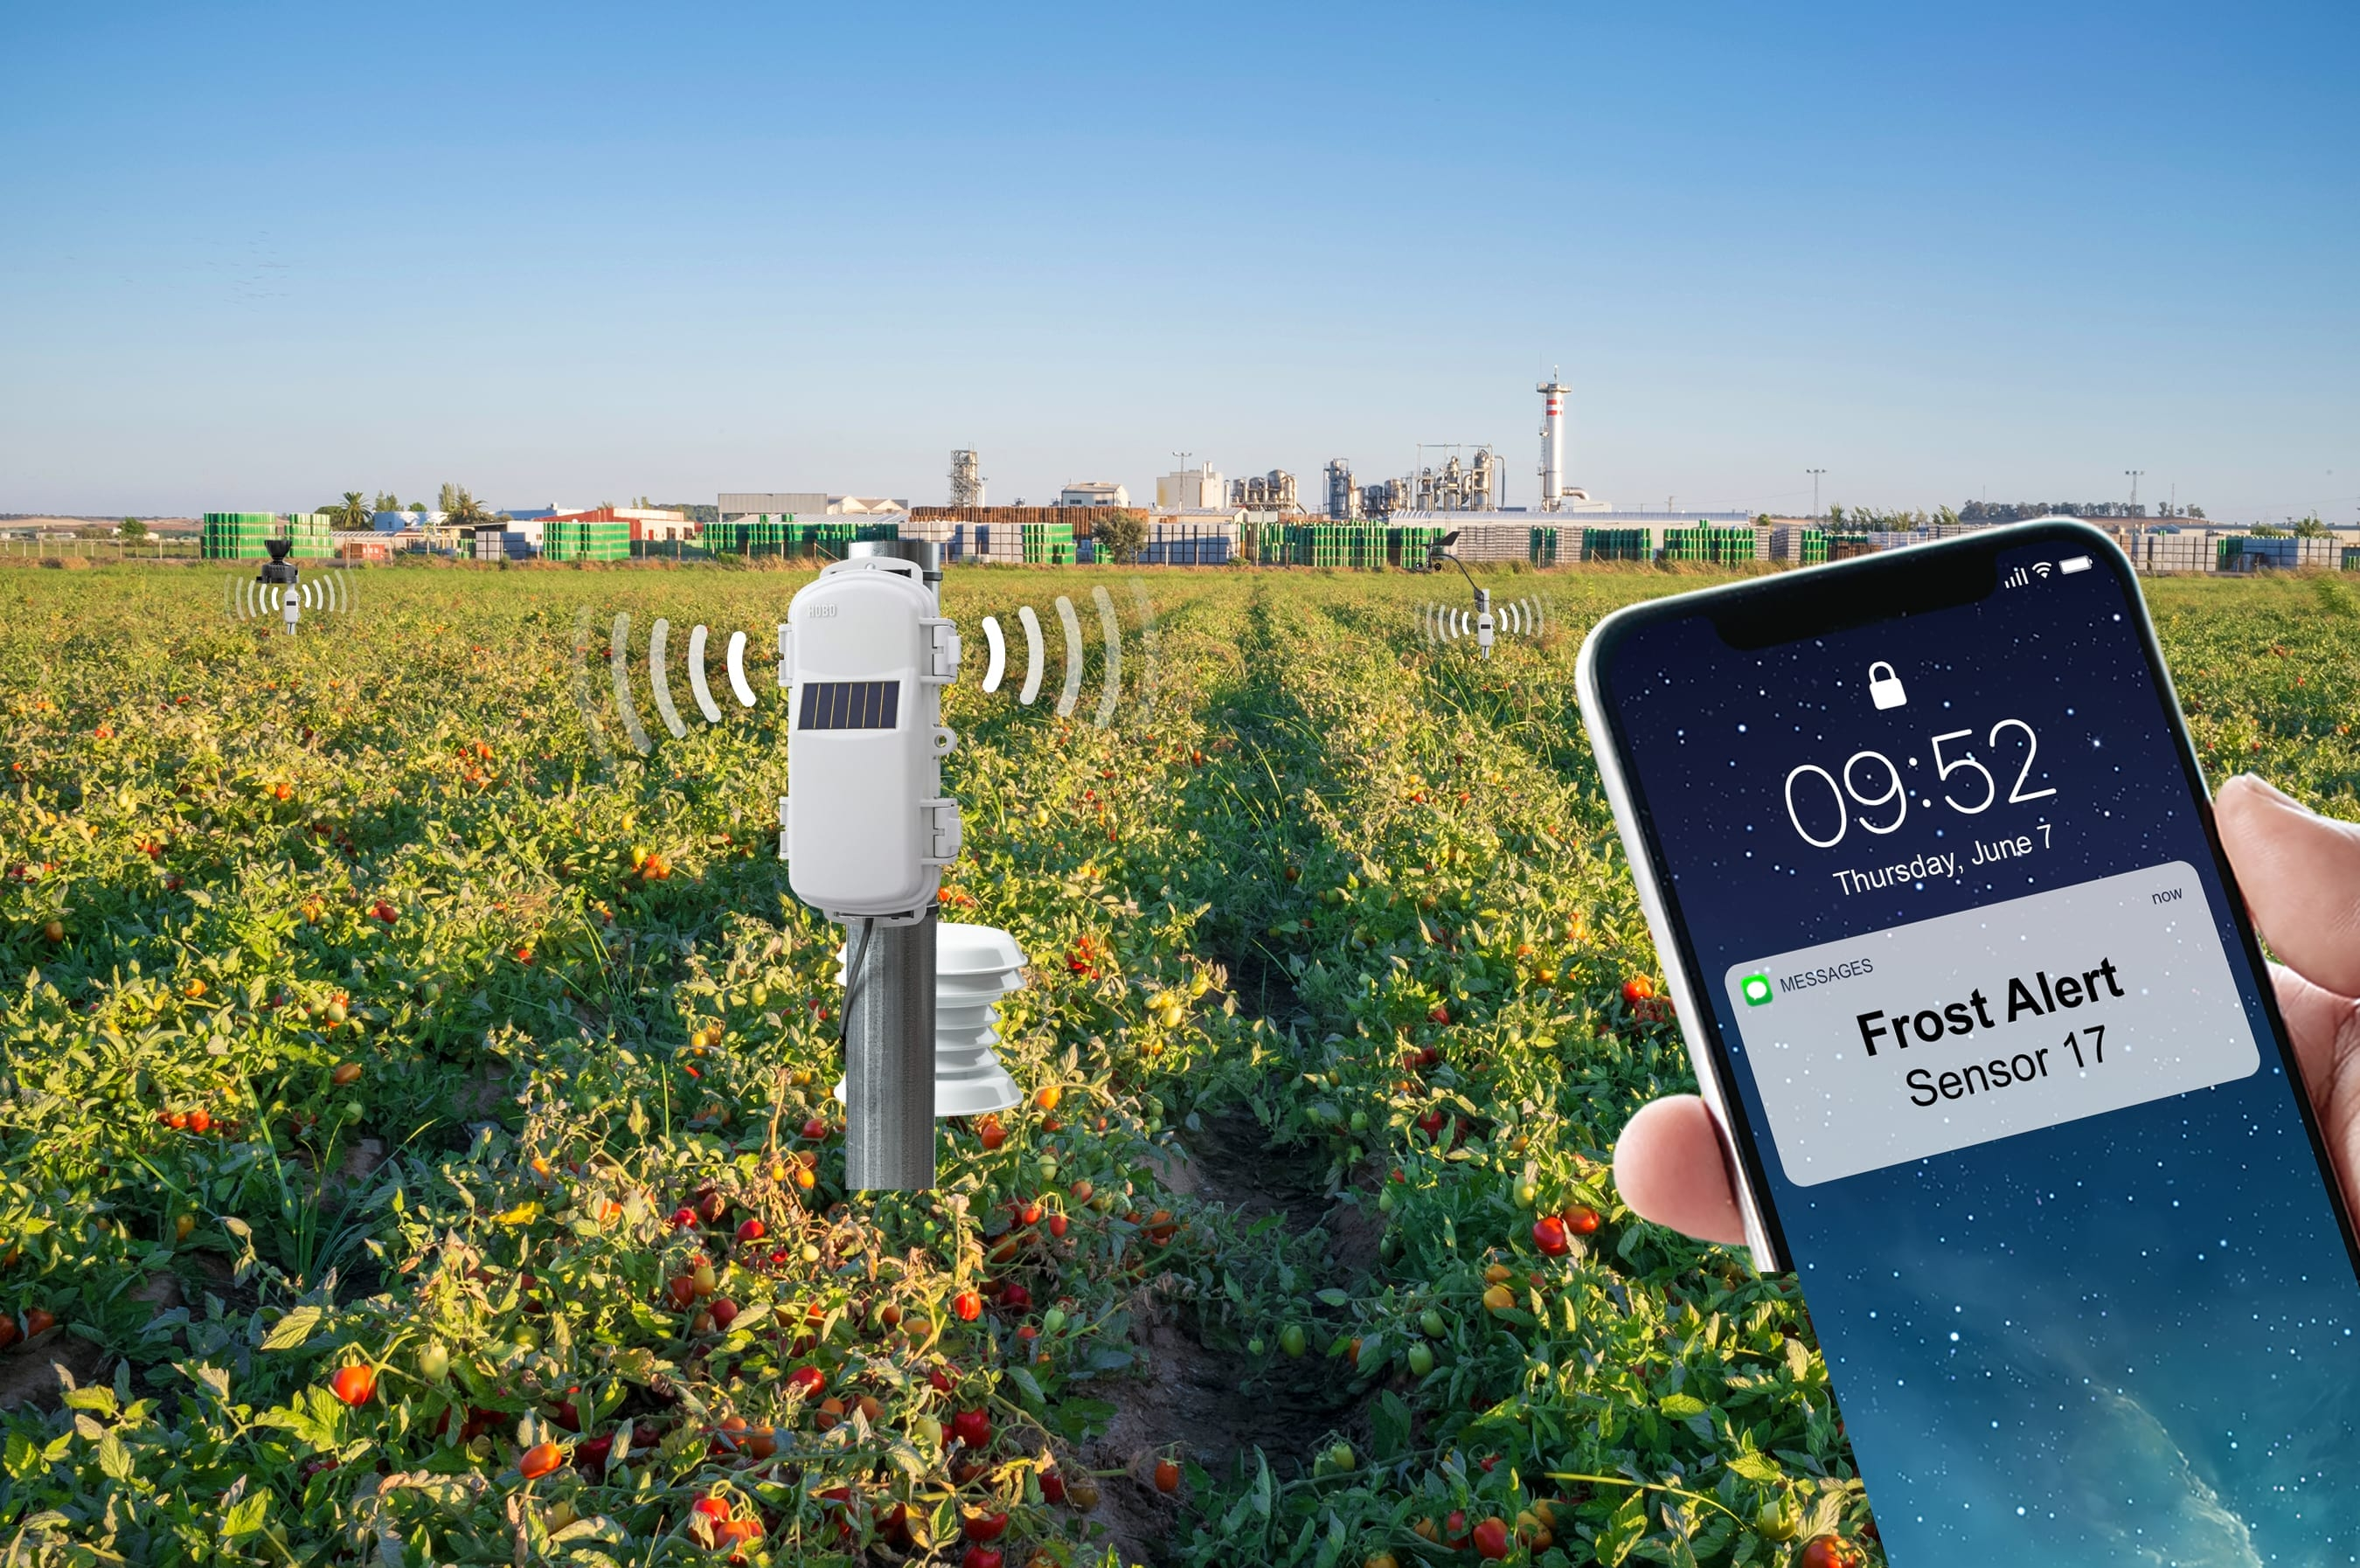 Onset HOBOnet wireless crop monitoring